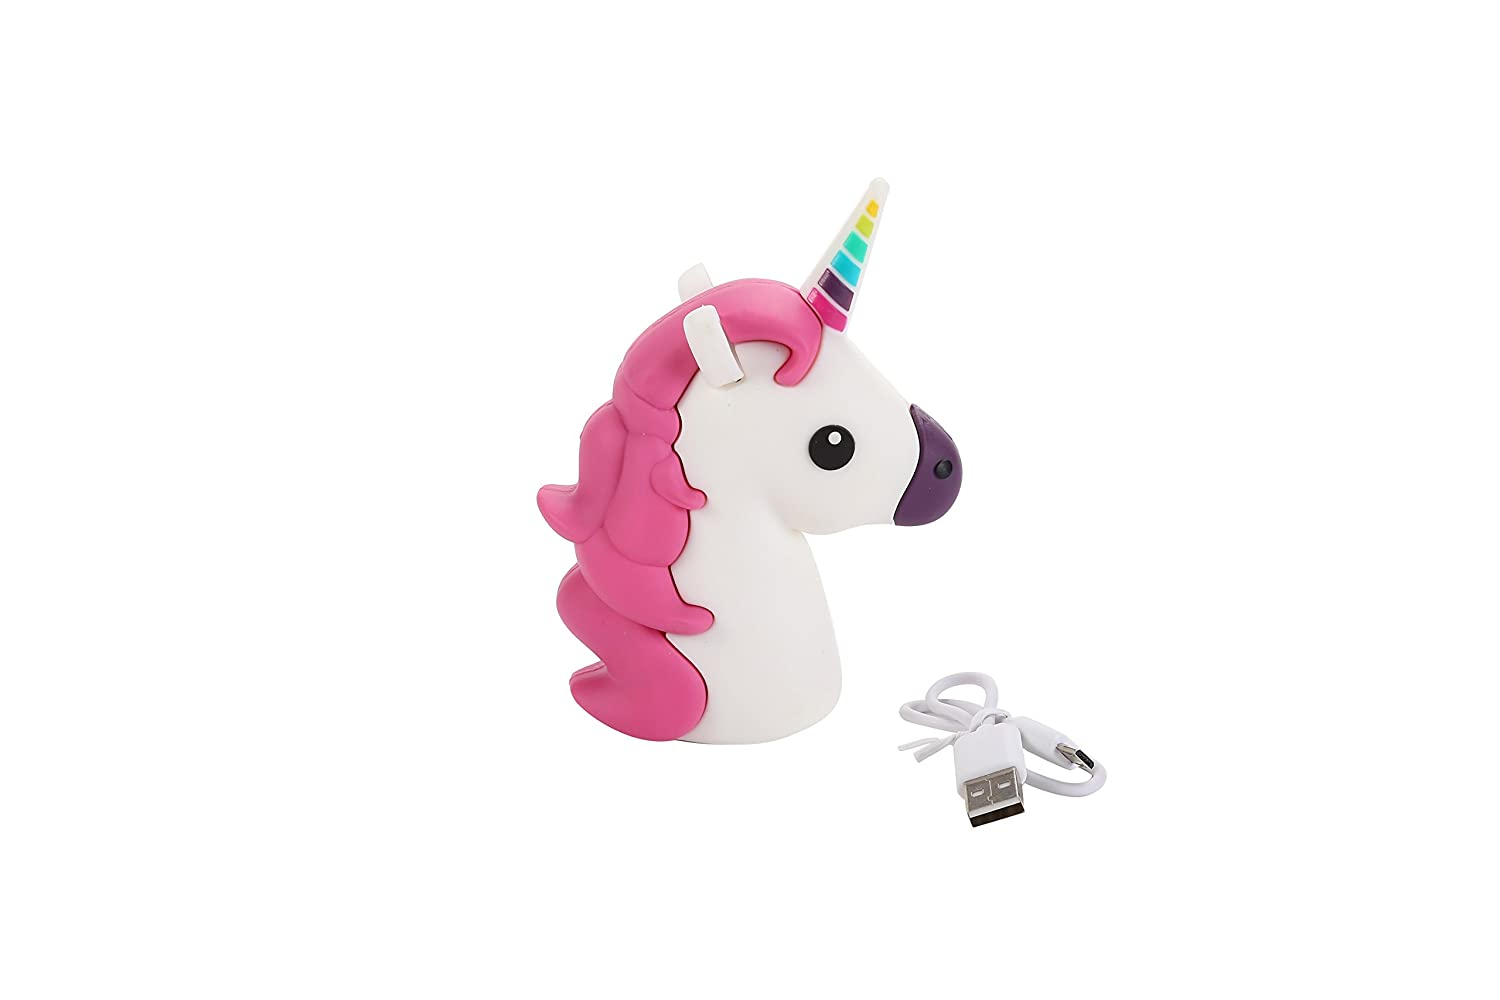 DISOK Power Bank Unicornio 1200 mha en Caja de Regalo con Cable Incluido - Regalos Originales Power Bank para Regalar Infantiles Originales. Recuerdos ...